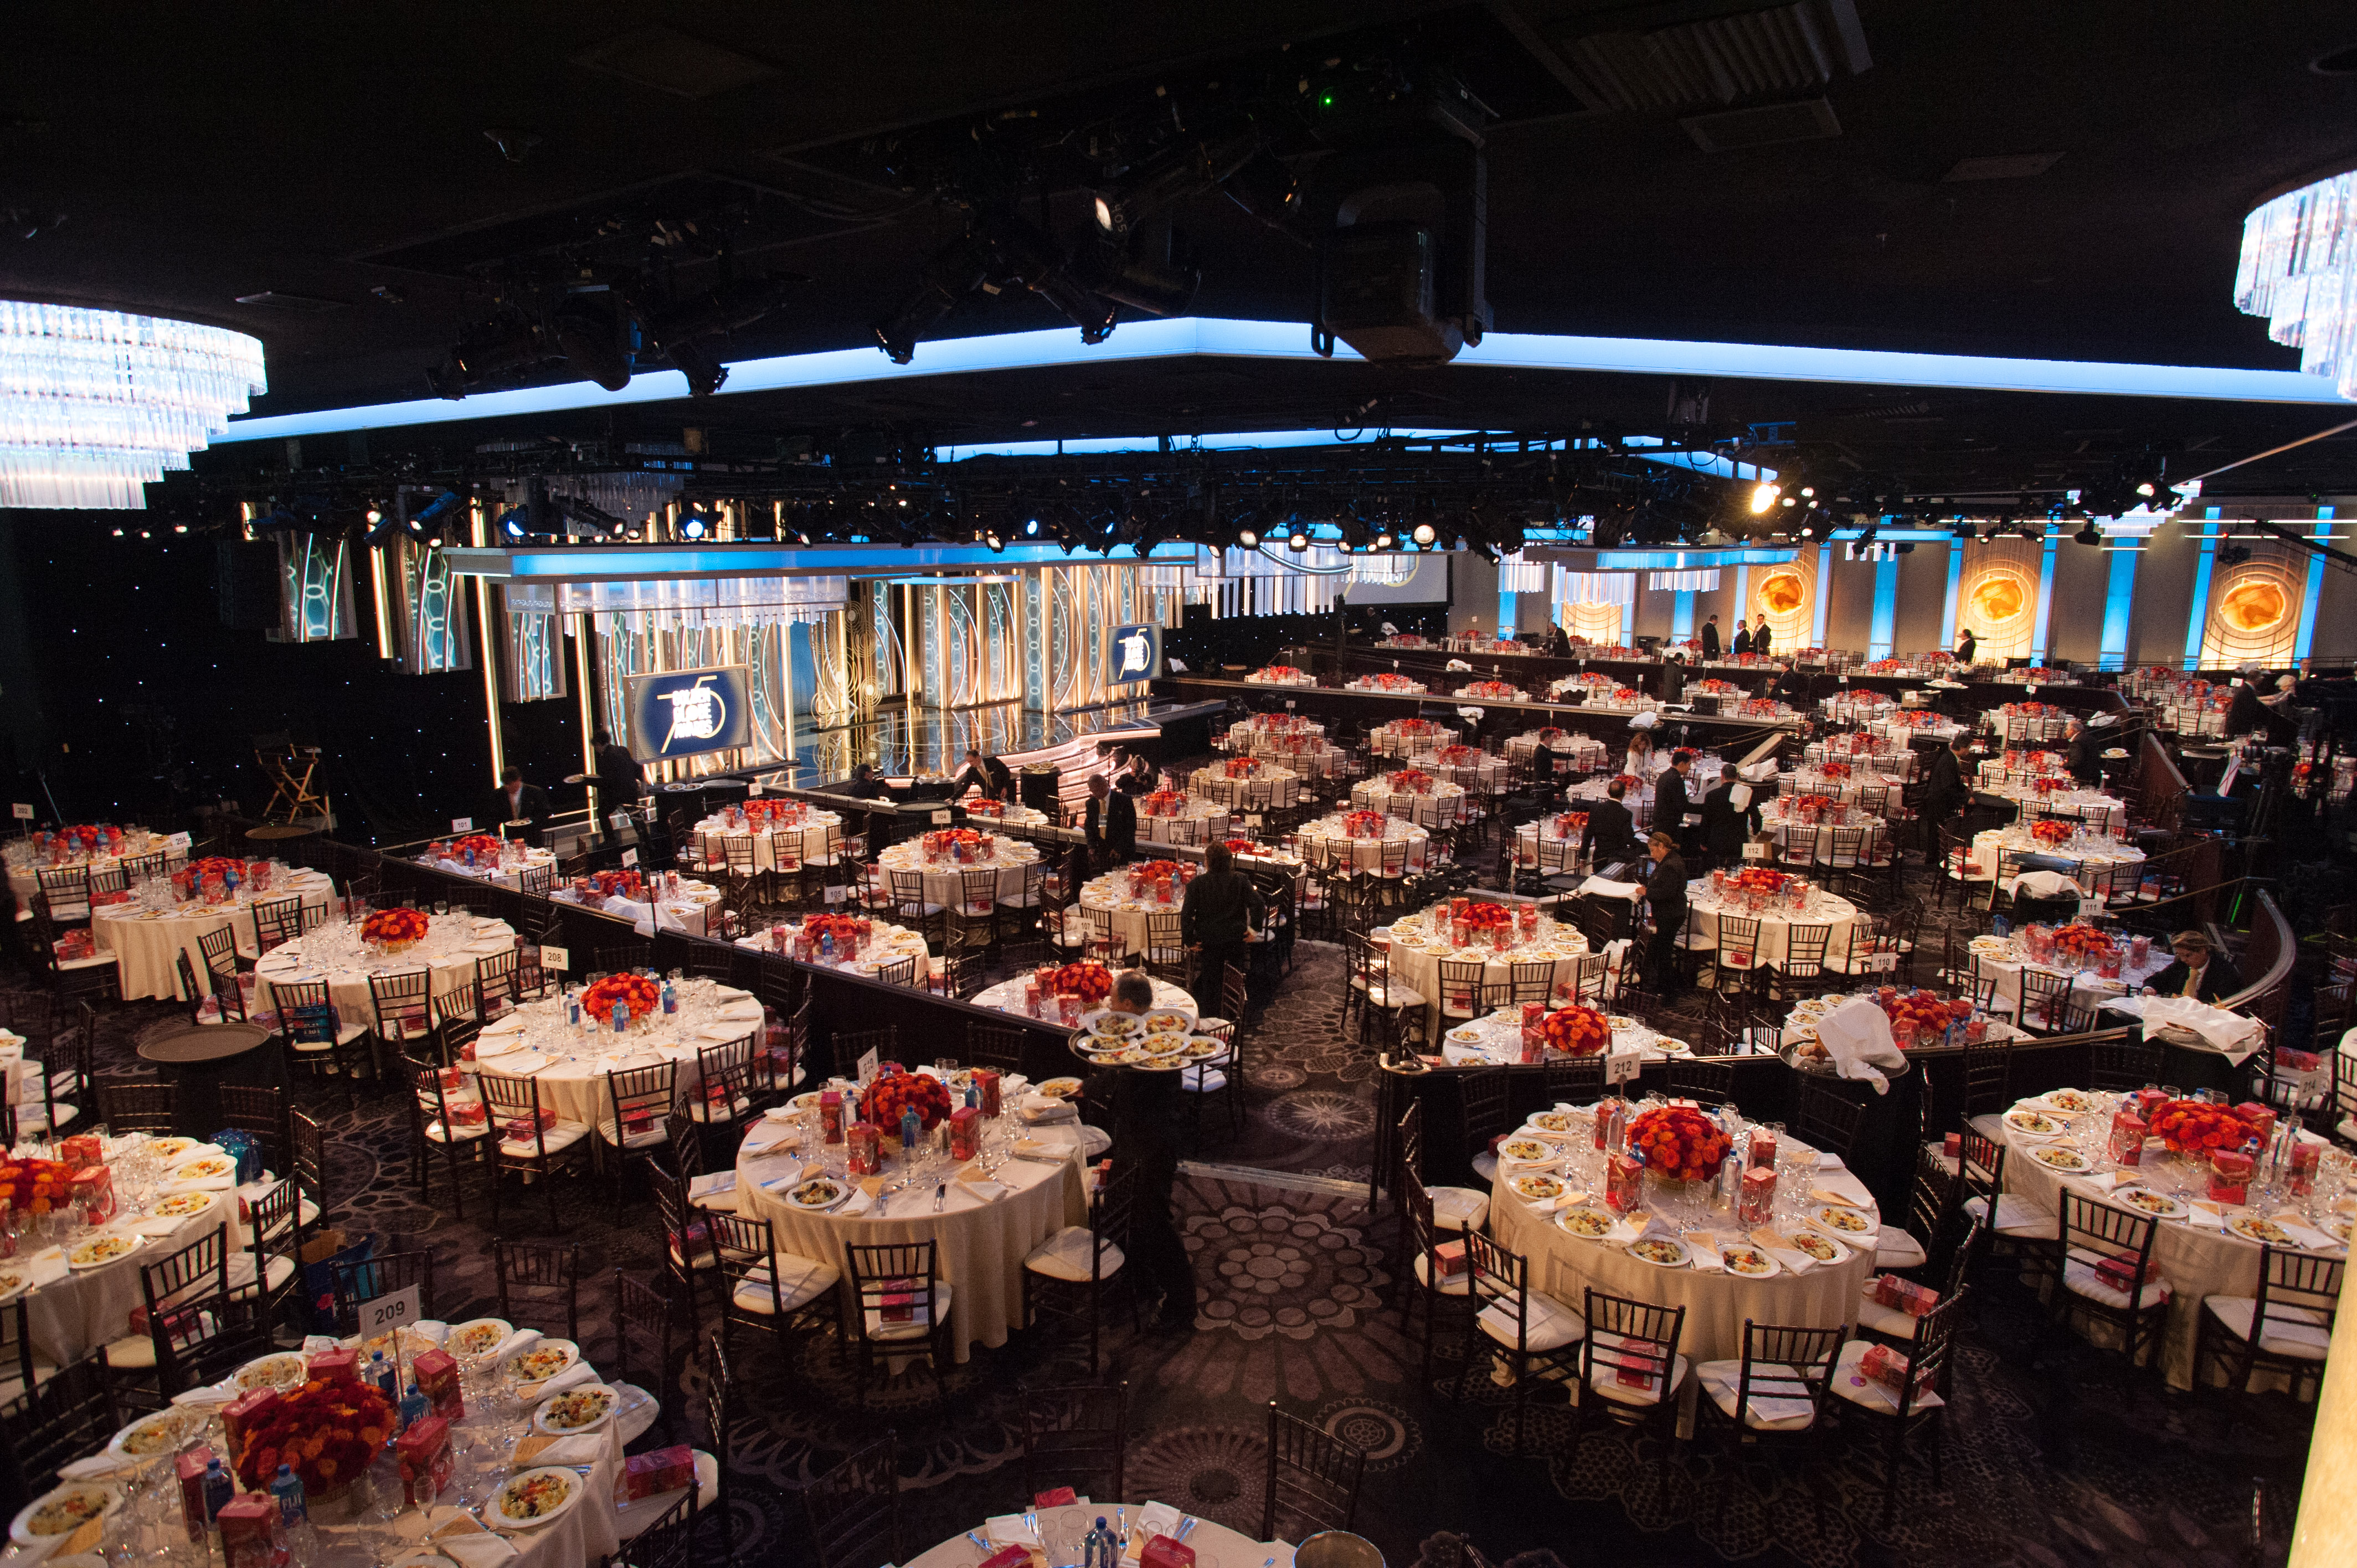 The Ballroom is set and ready for the 75th Golden Globes.